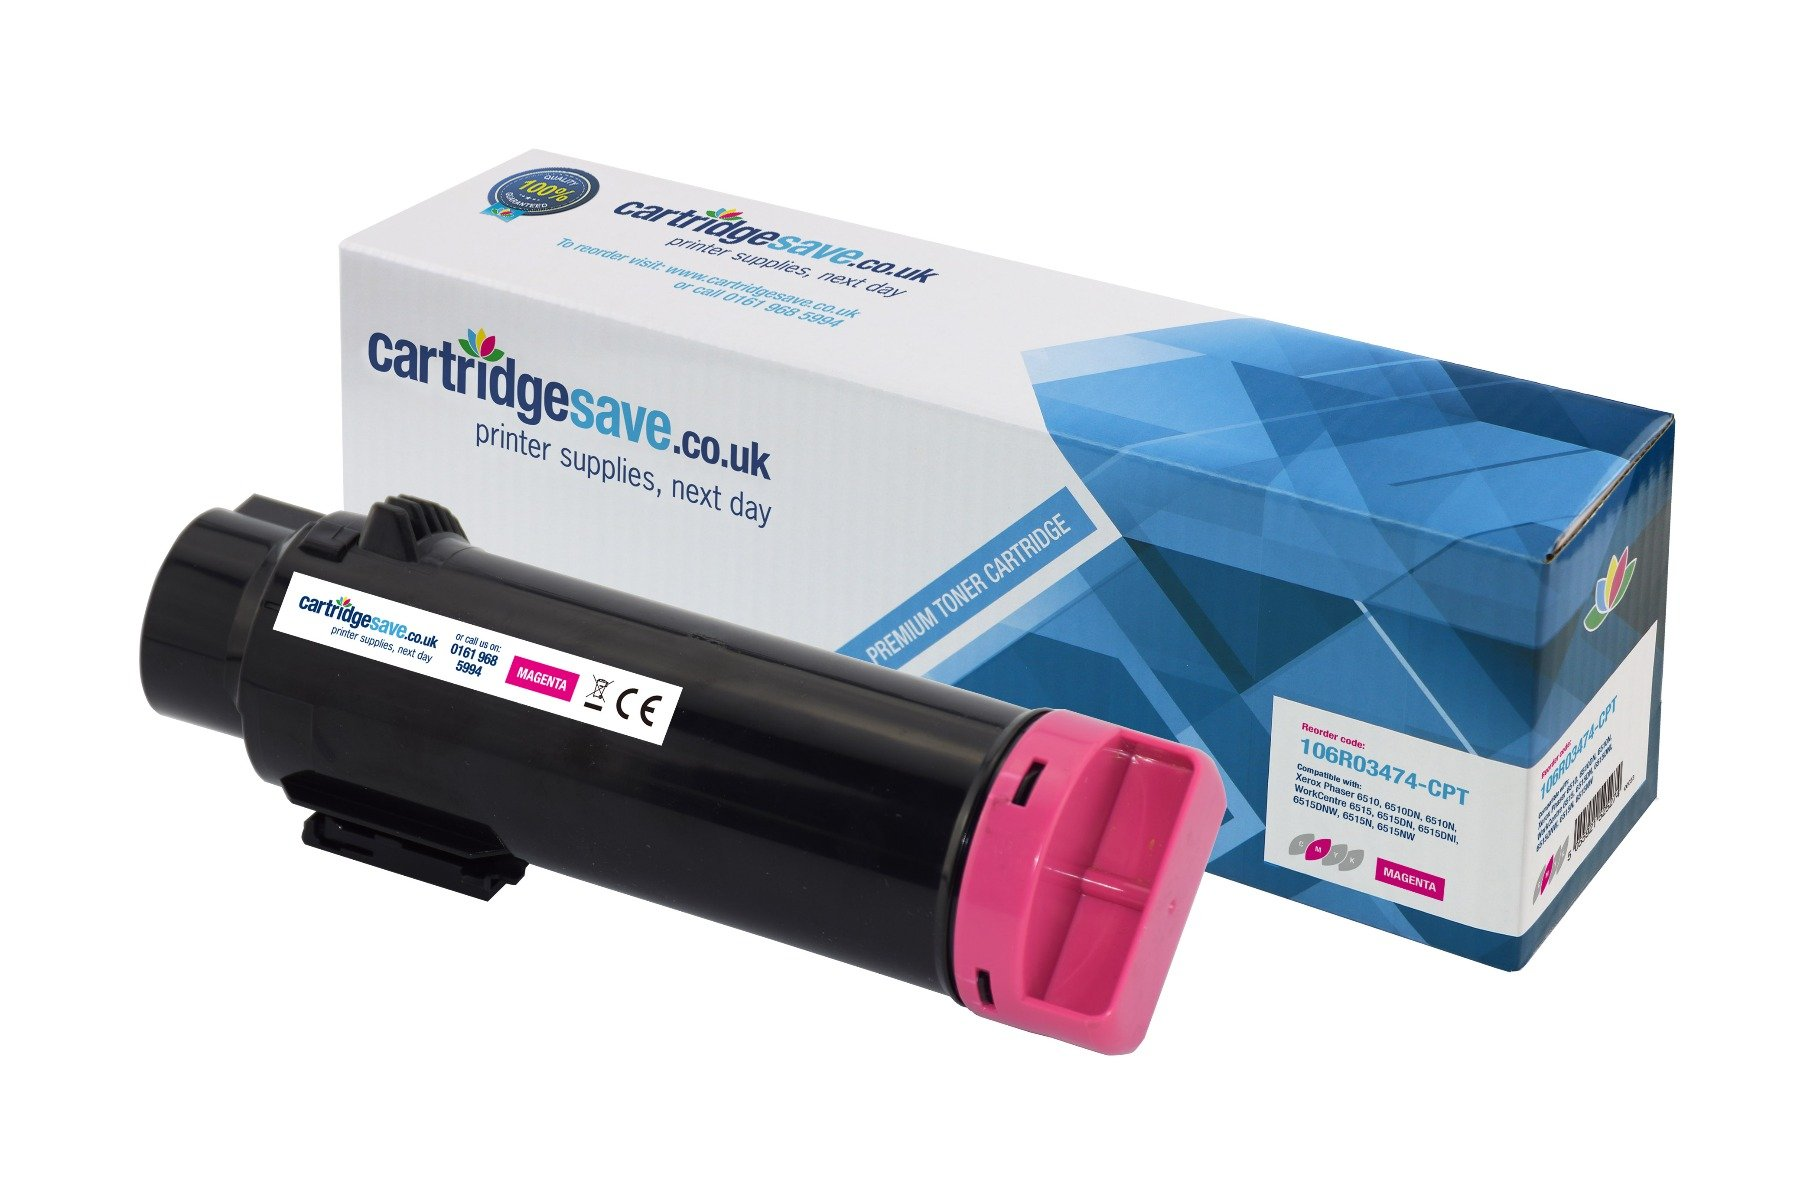 Compatible Magenta Xerox 106R03474 Toner Cartridge - (106R03474)